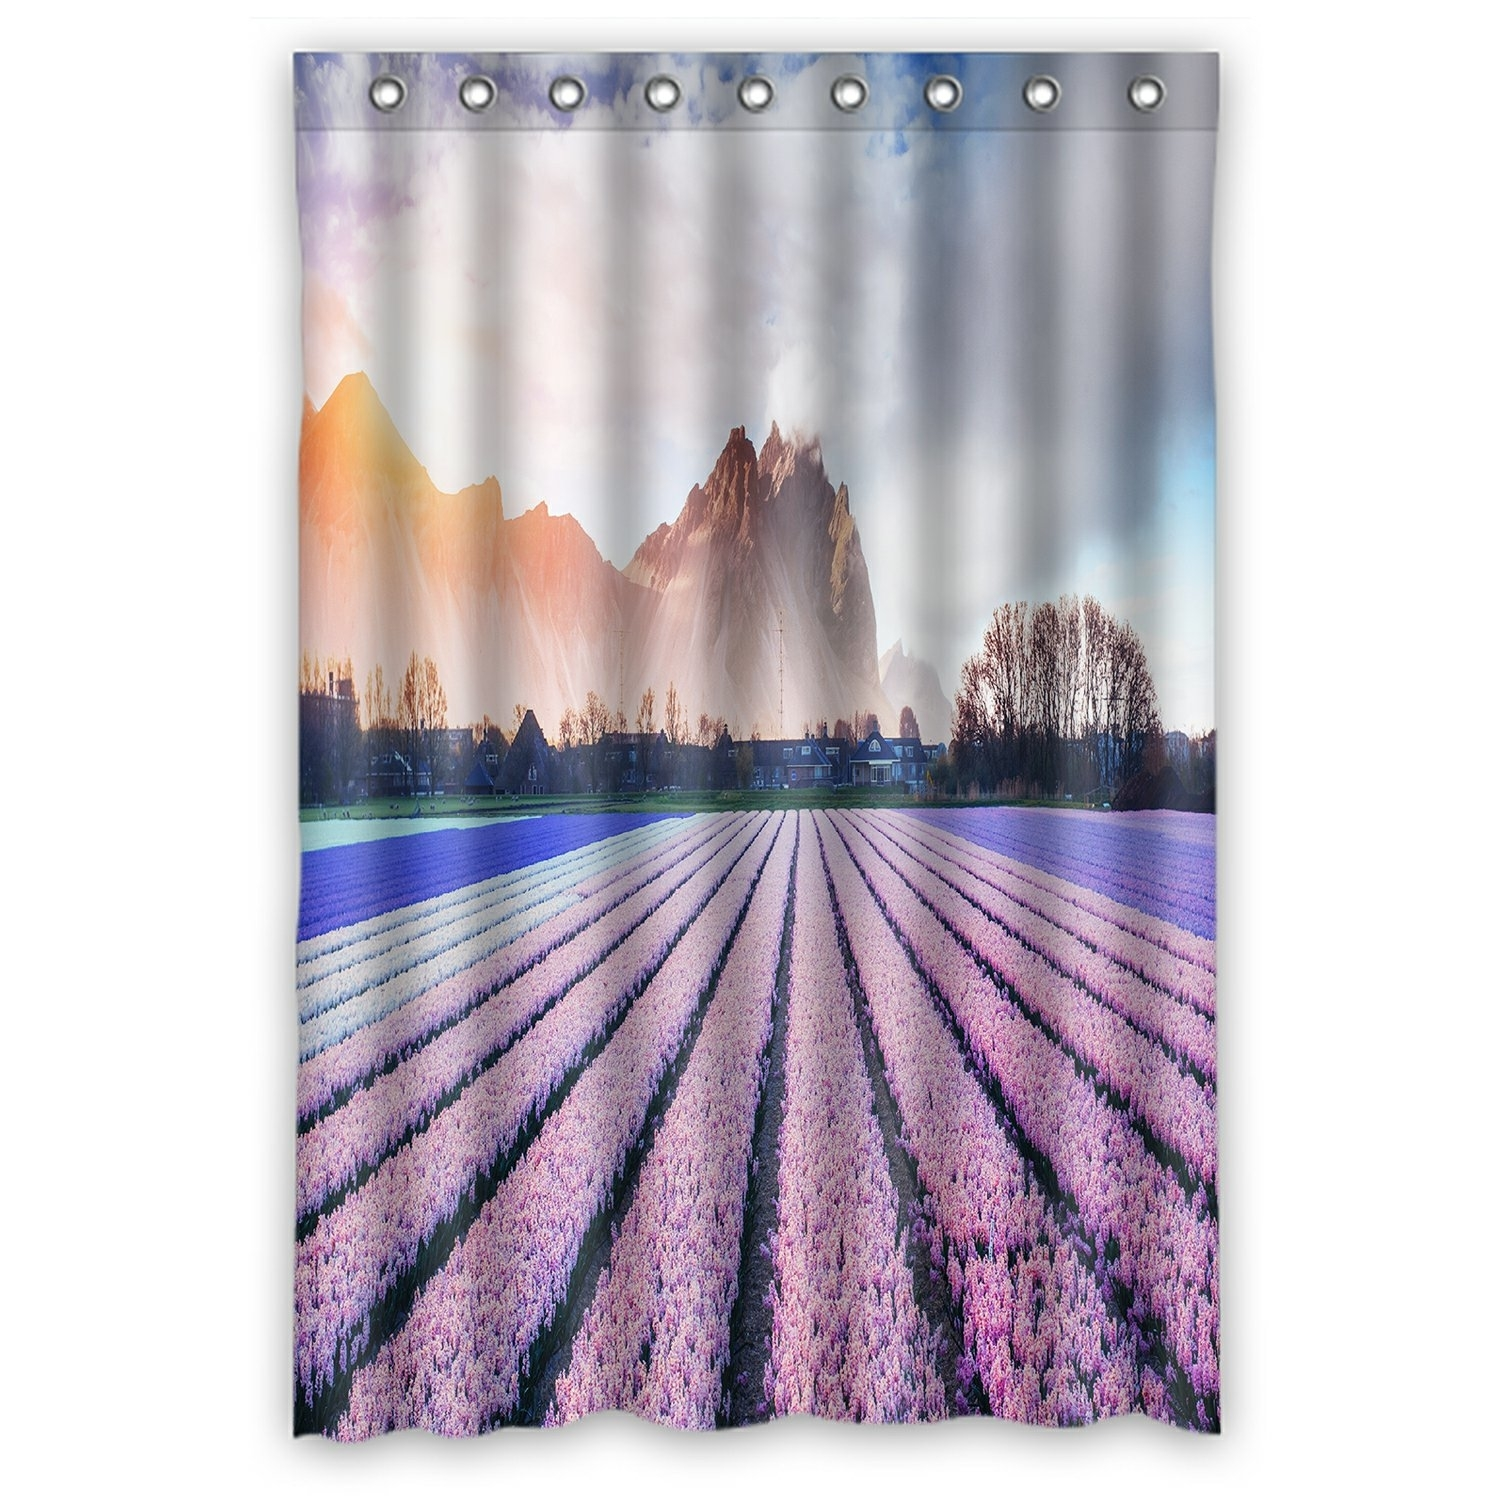 Landscape Scenery Nature Shower Curtain, Beautiful Mountains in the Mist at Sunset Shower Curtain 48x72 inch